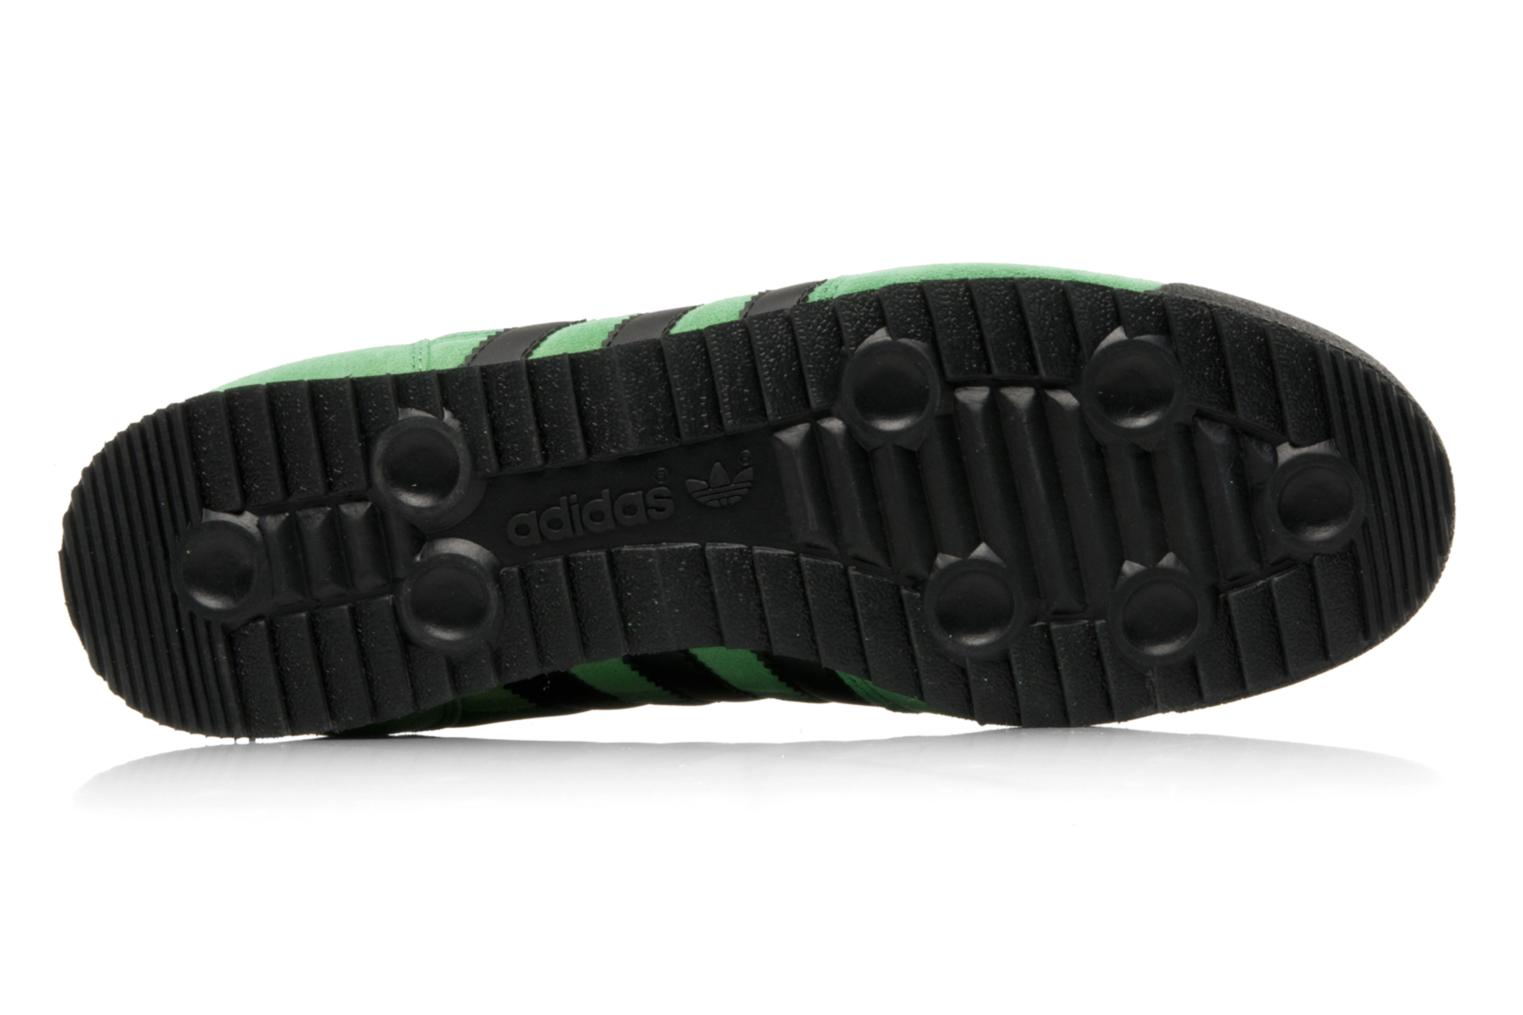 Dragon Twilight Green - Black 1 - Sun